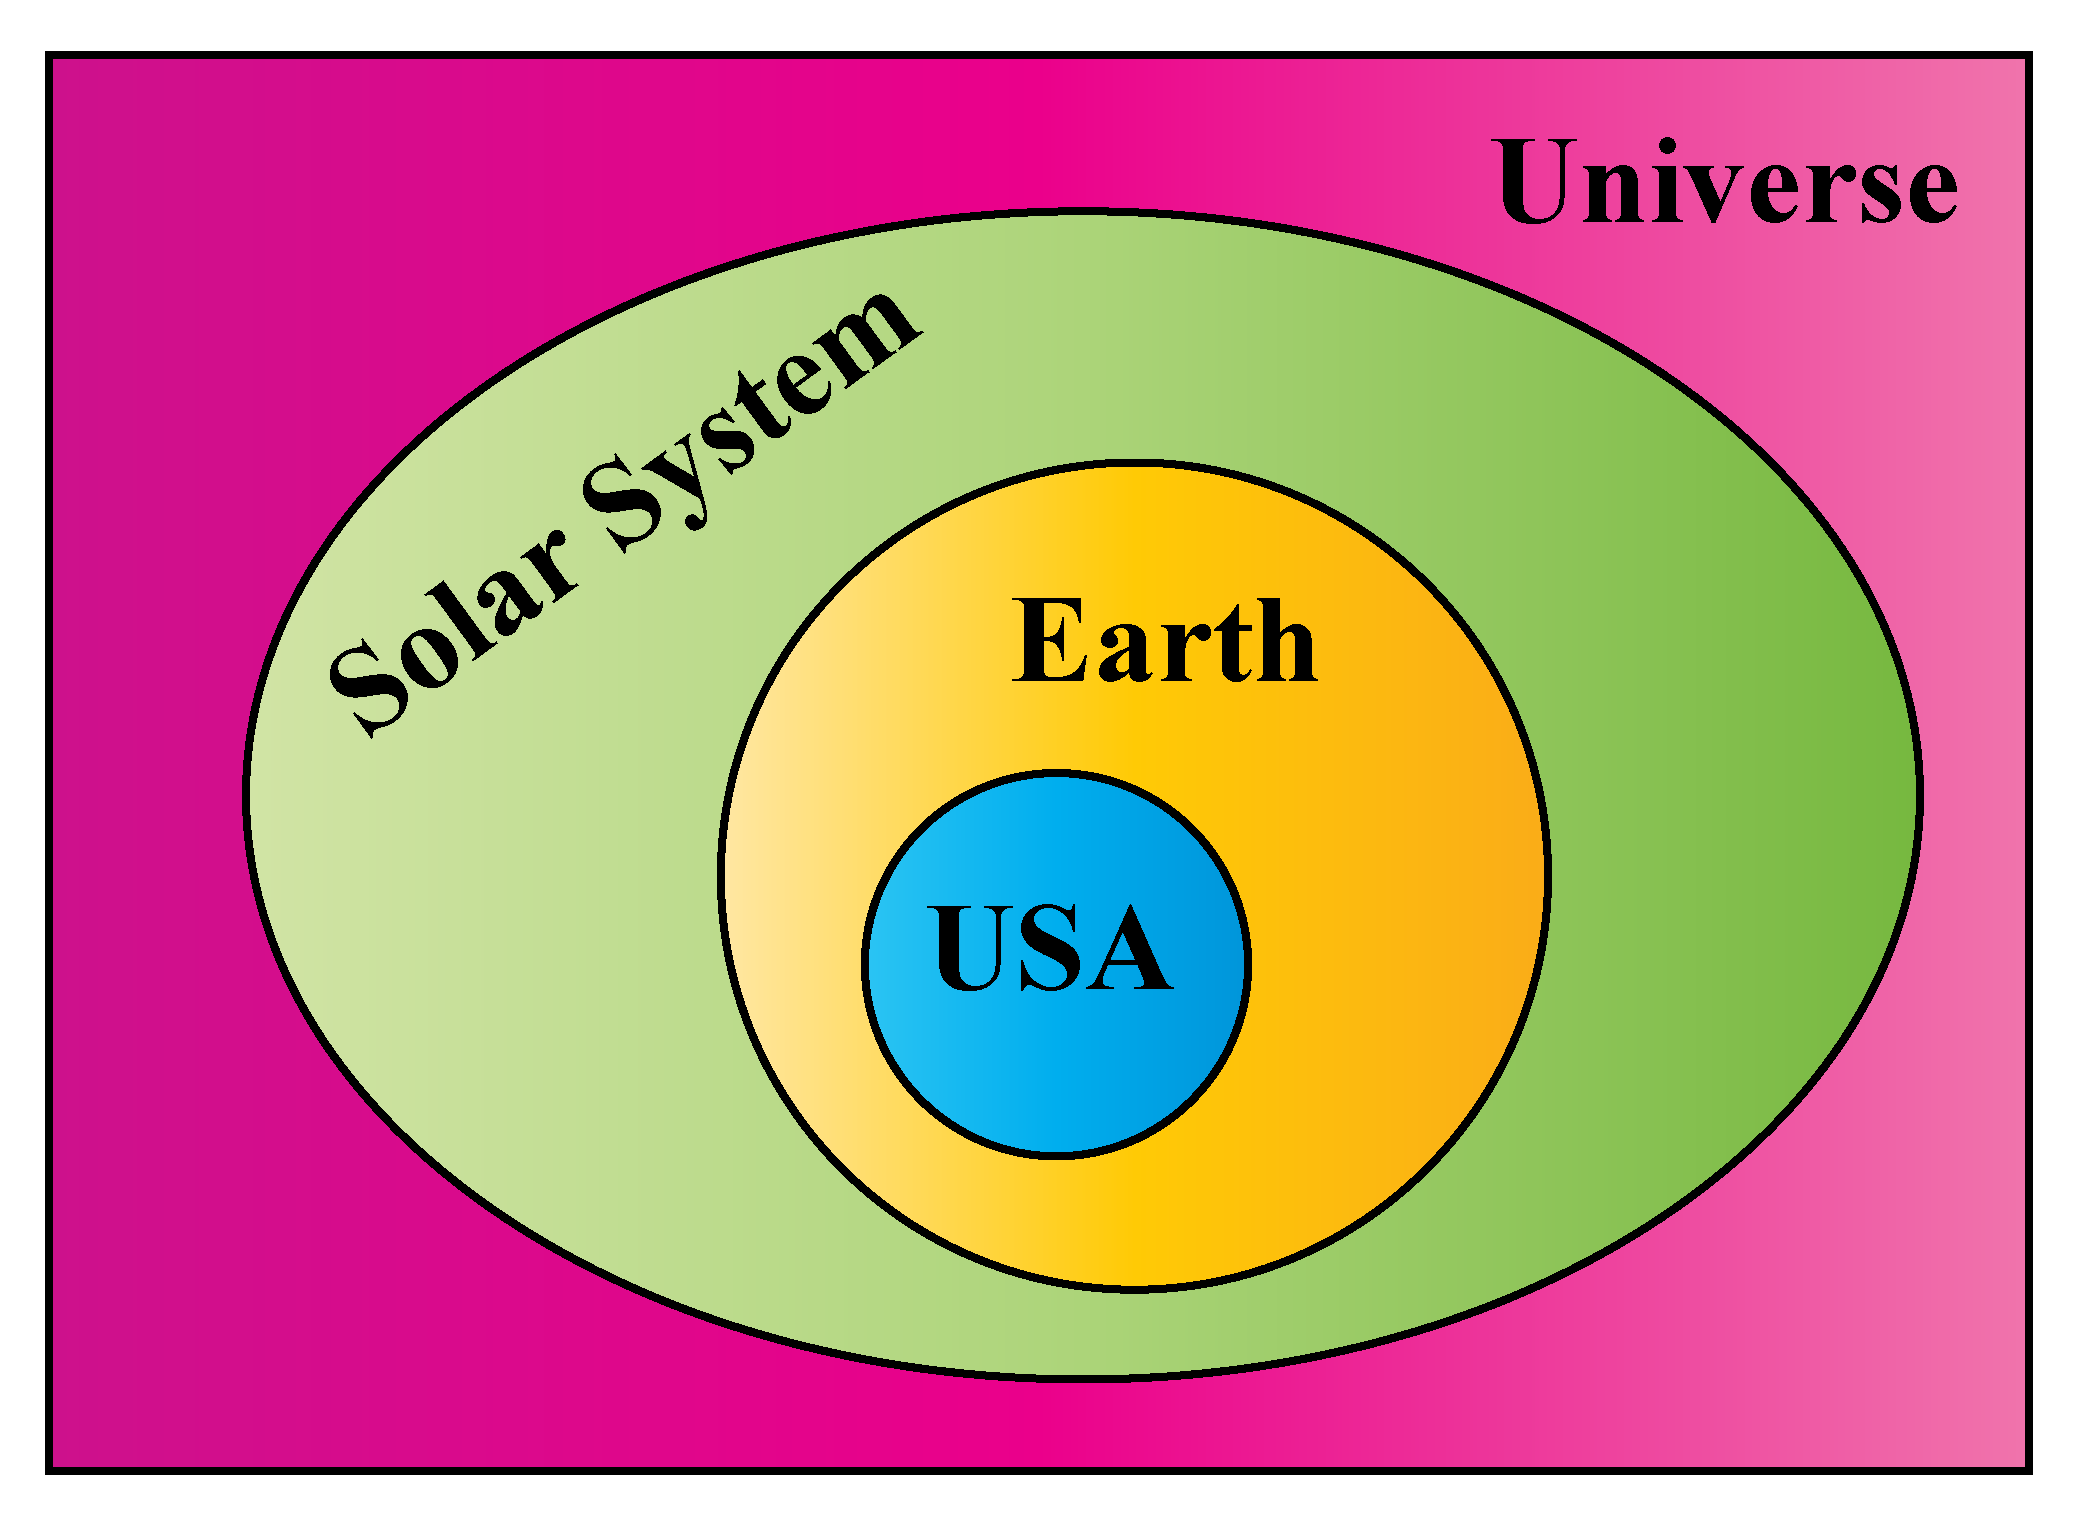 Venn diagram example representing the universe, solar system, Earth, and USA